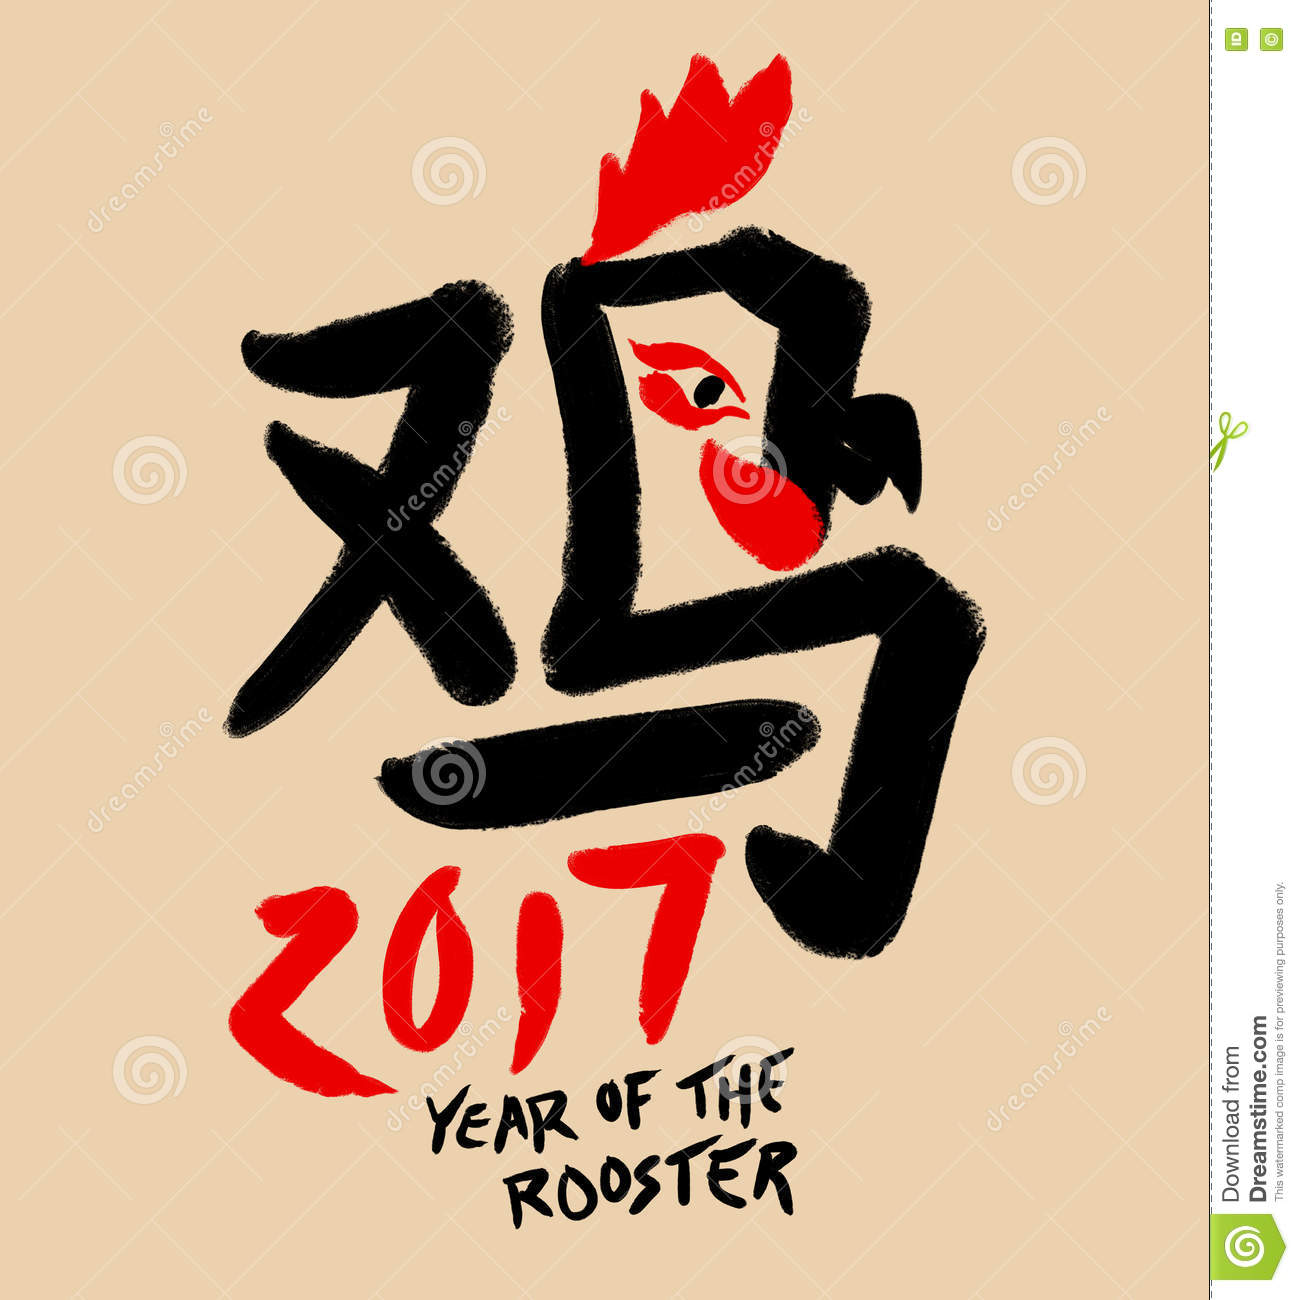 Chinese new year year rooster simplified chinese calligraphy character